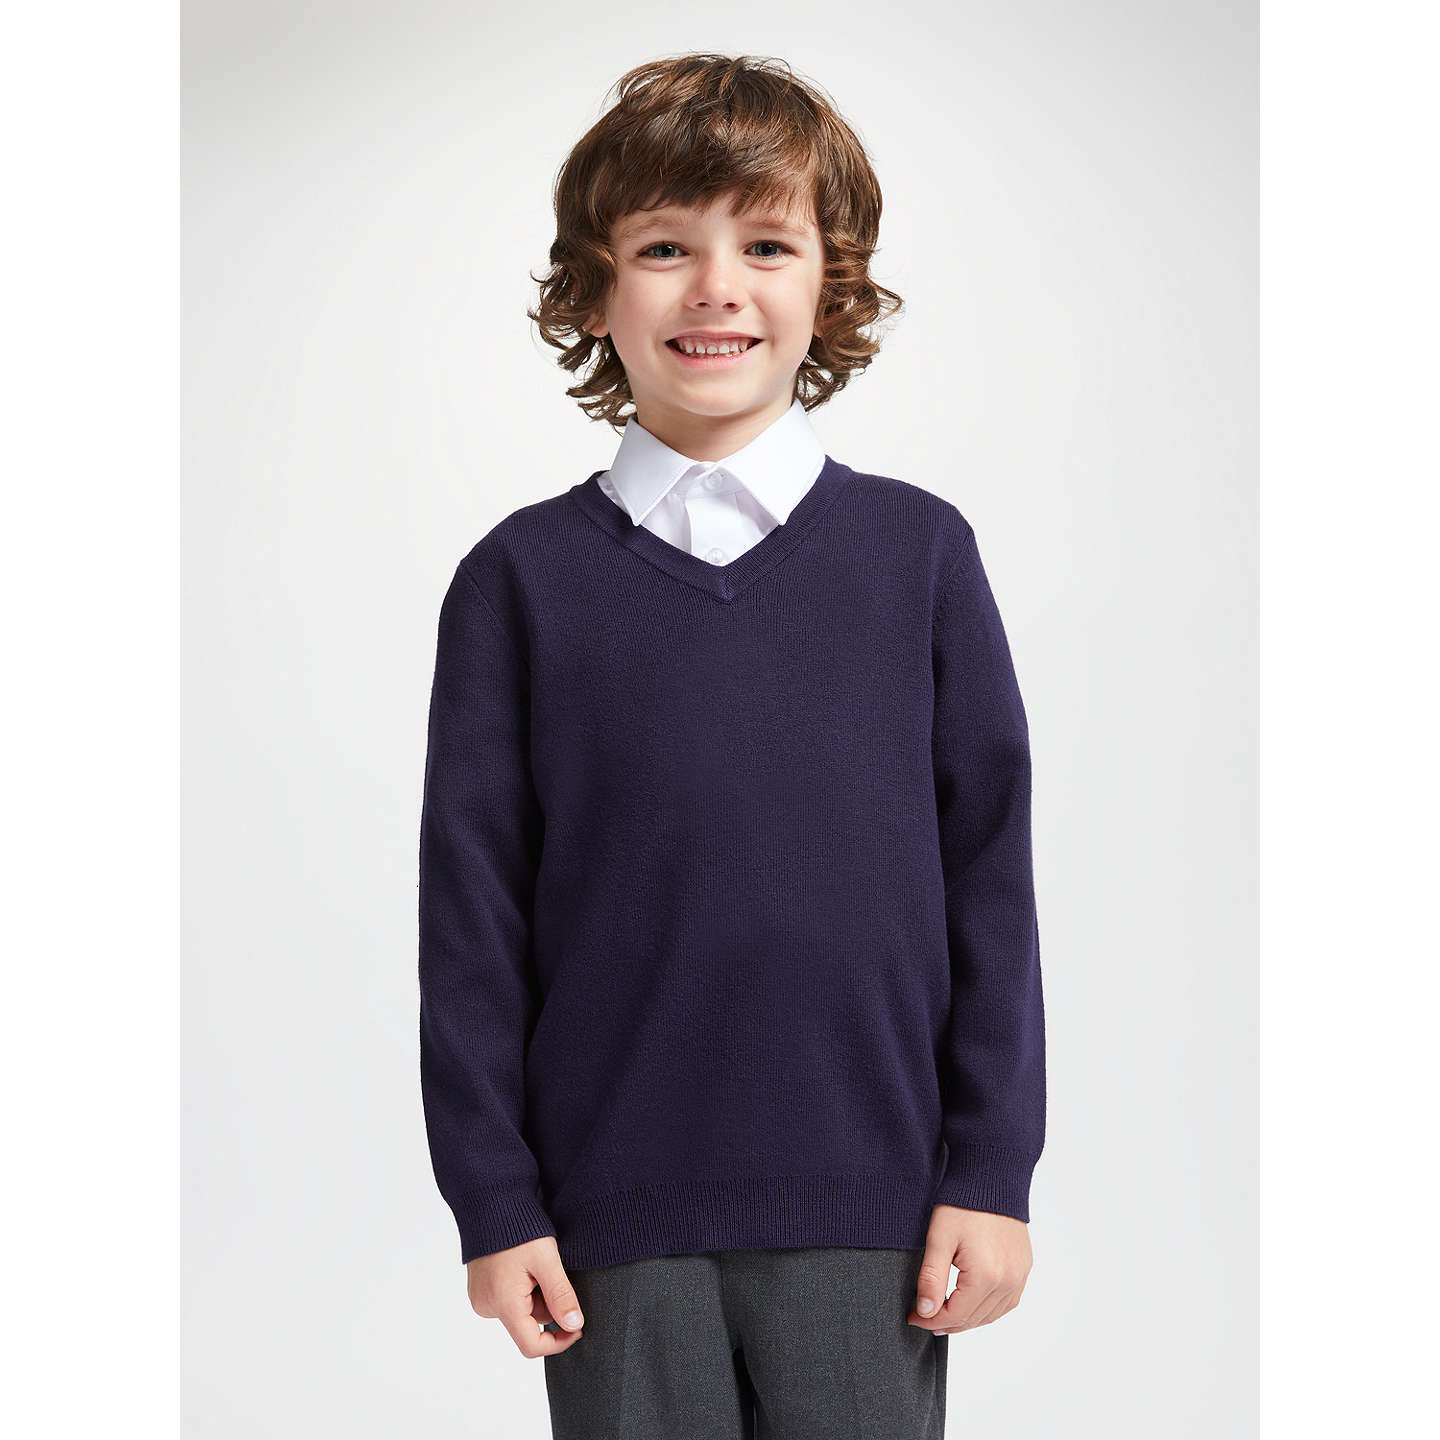 BuyJohn Lewis Unisex School V-Neck Jumper, Navy, 3-4 years Online at johnlewis.com